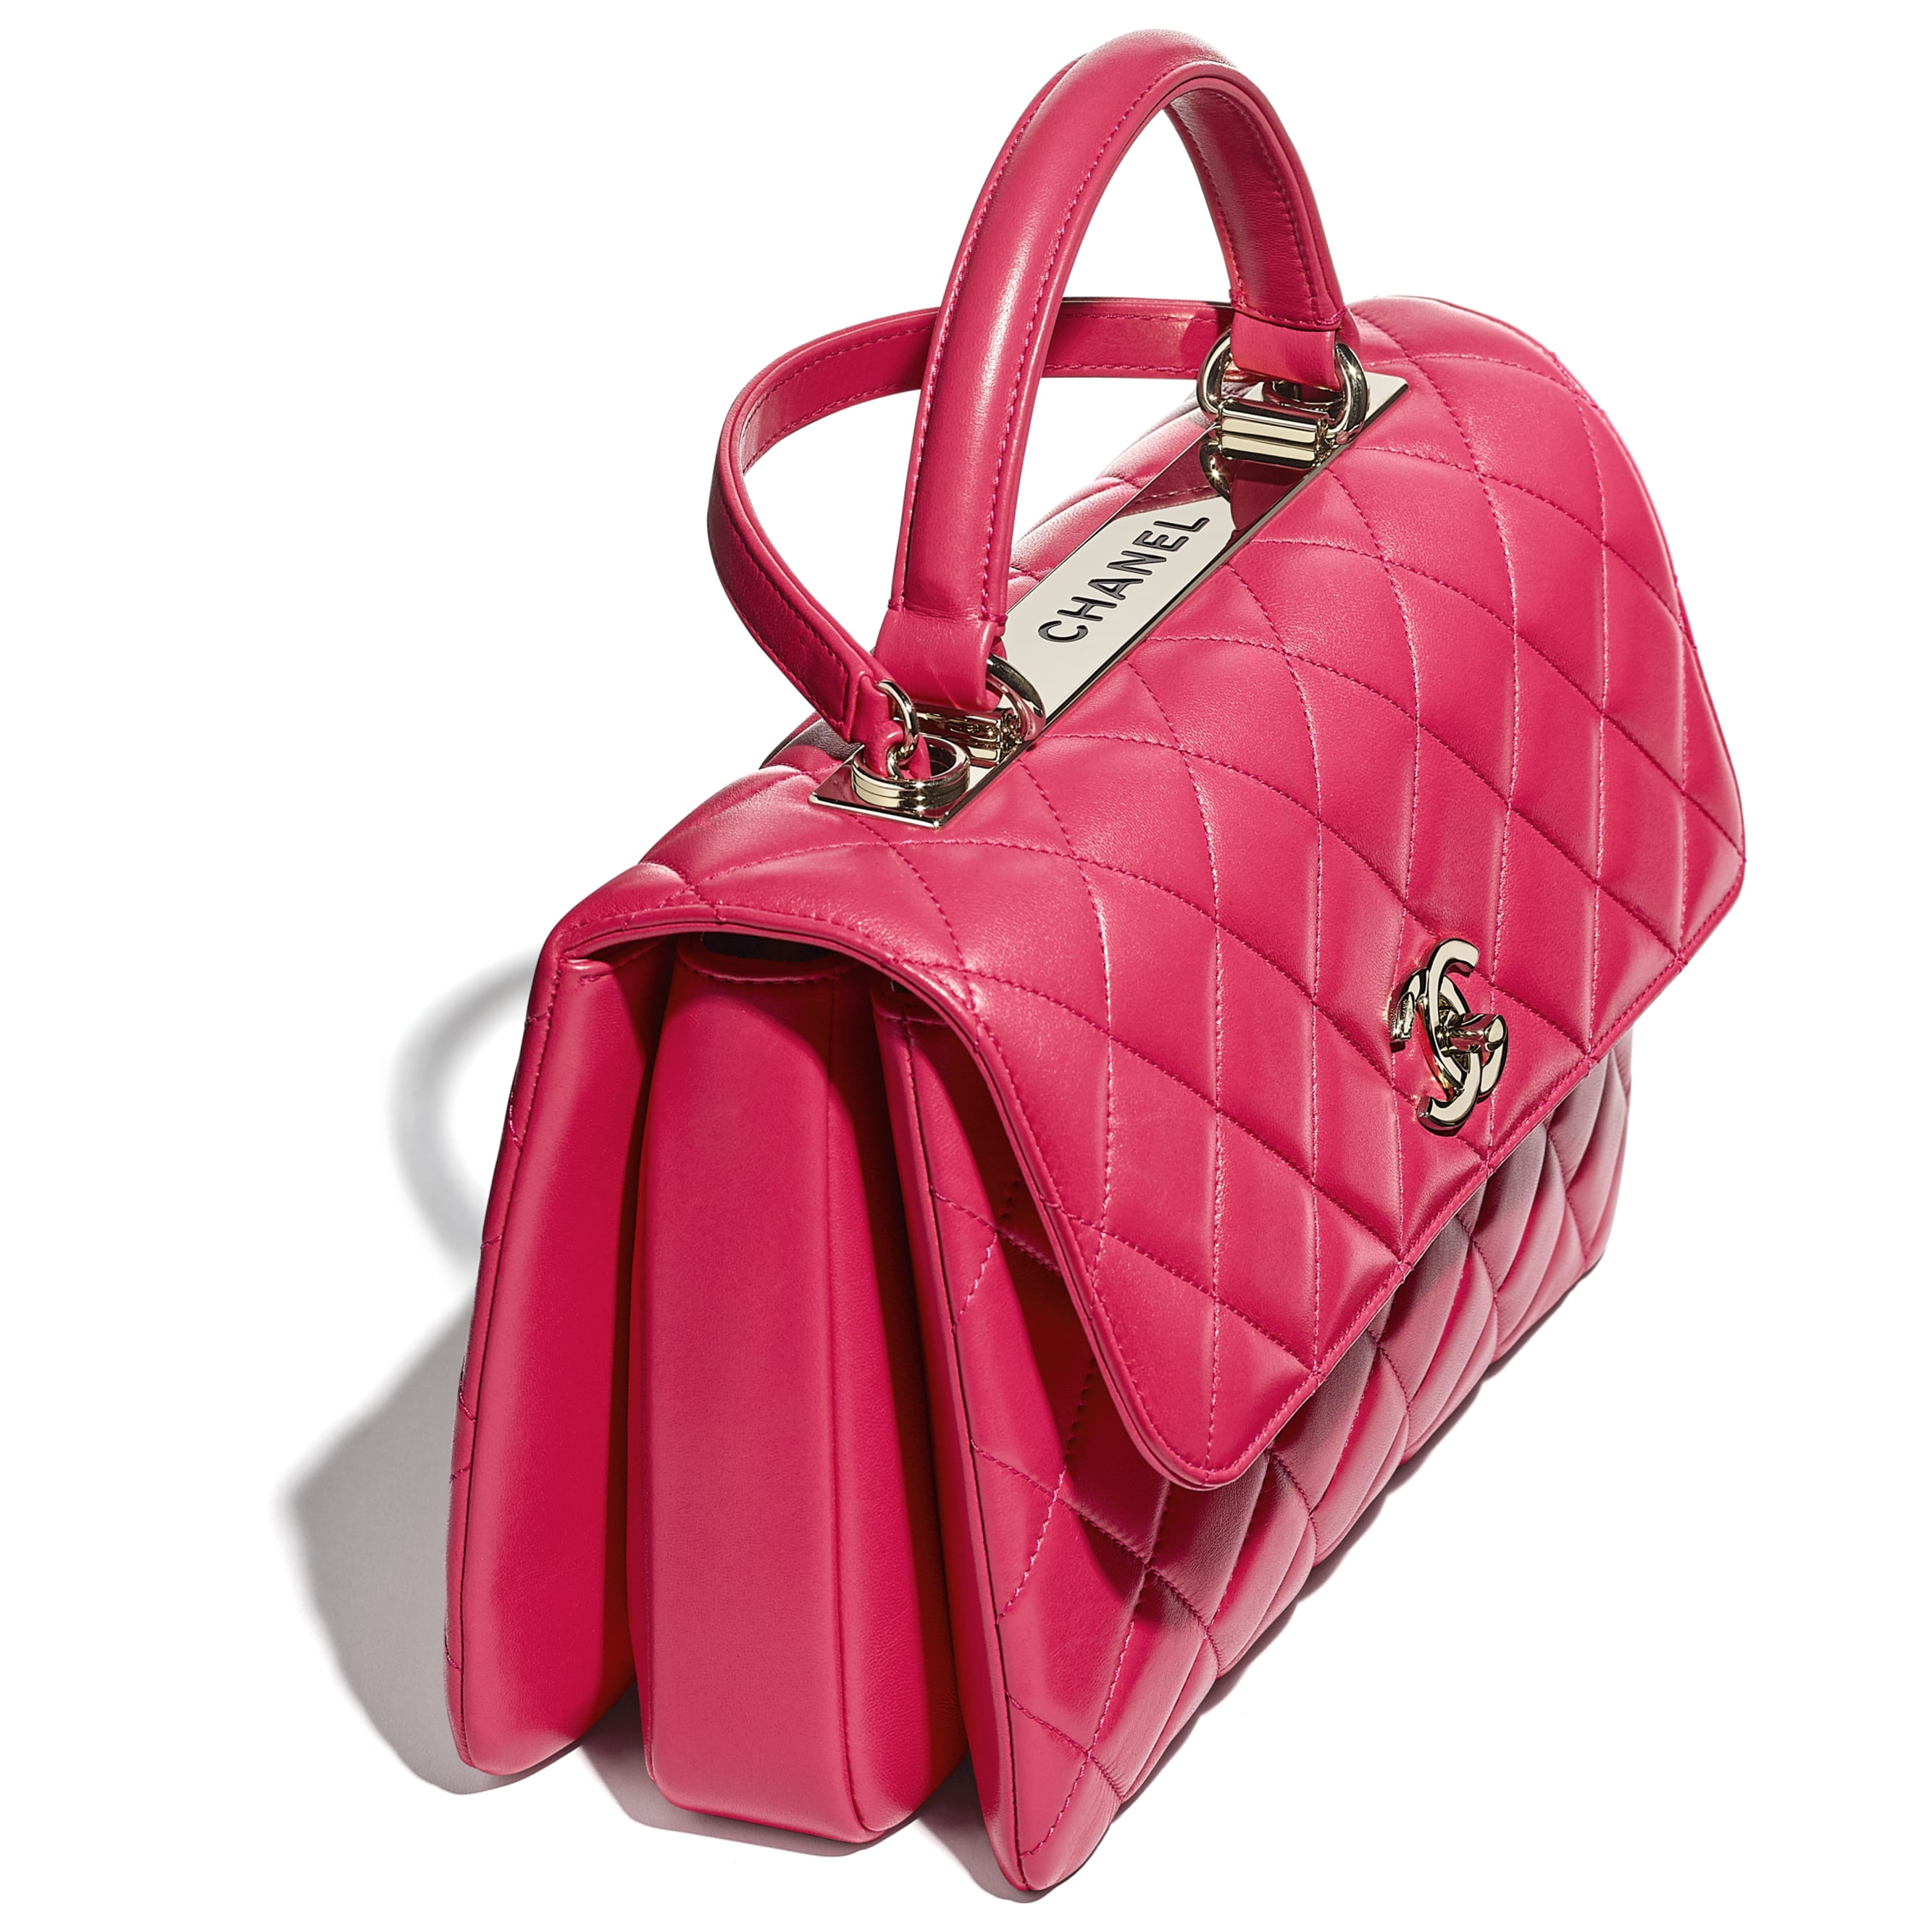 Flap Bag With Top Handle - Pink - Lambskin - CHANEL - Extra view - see standard sized version